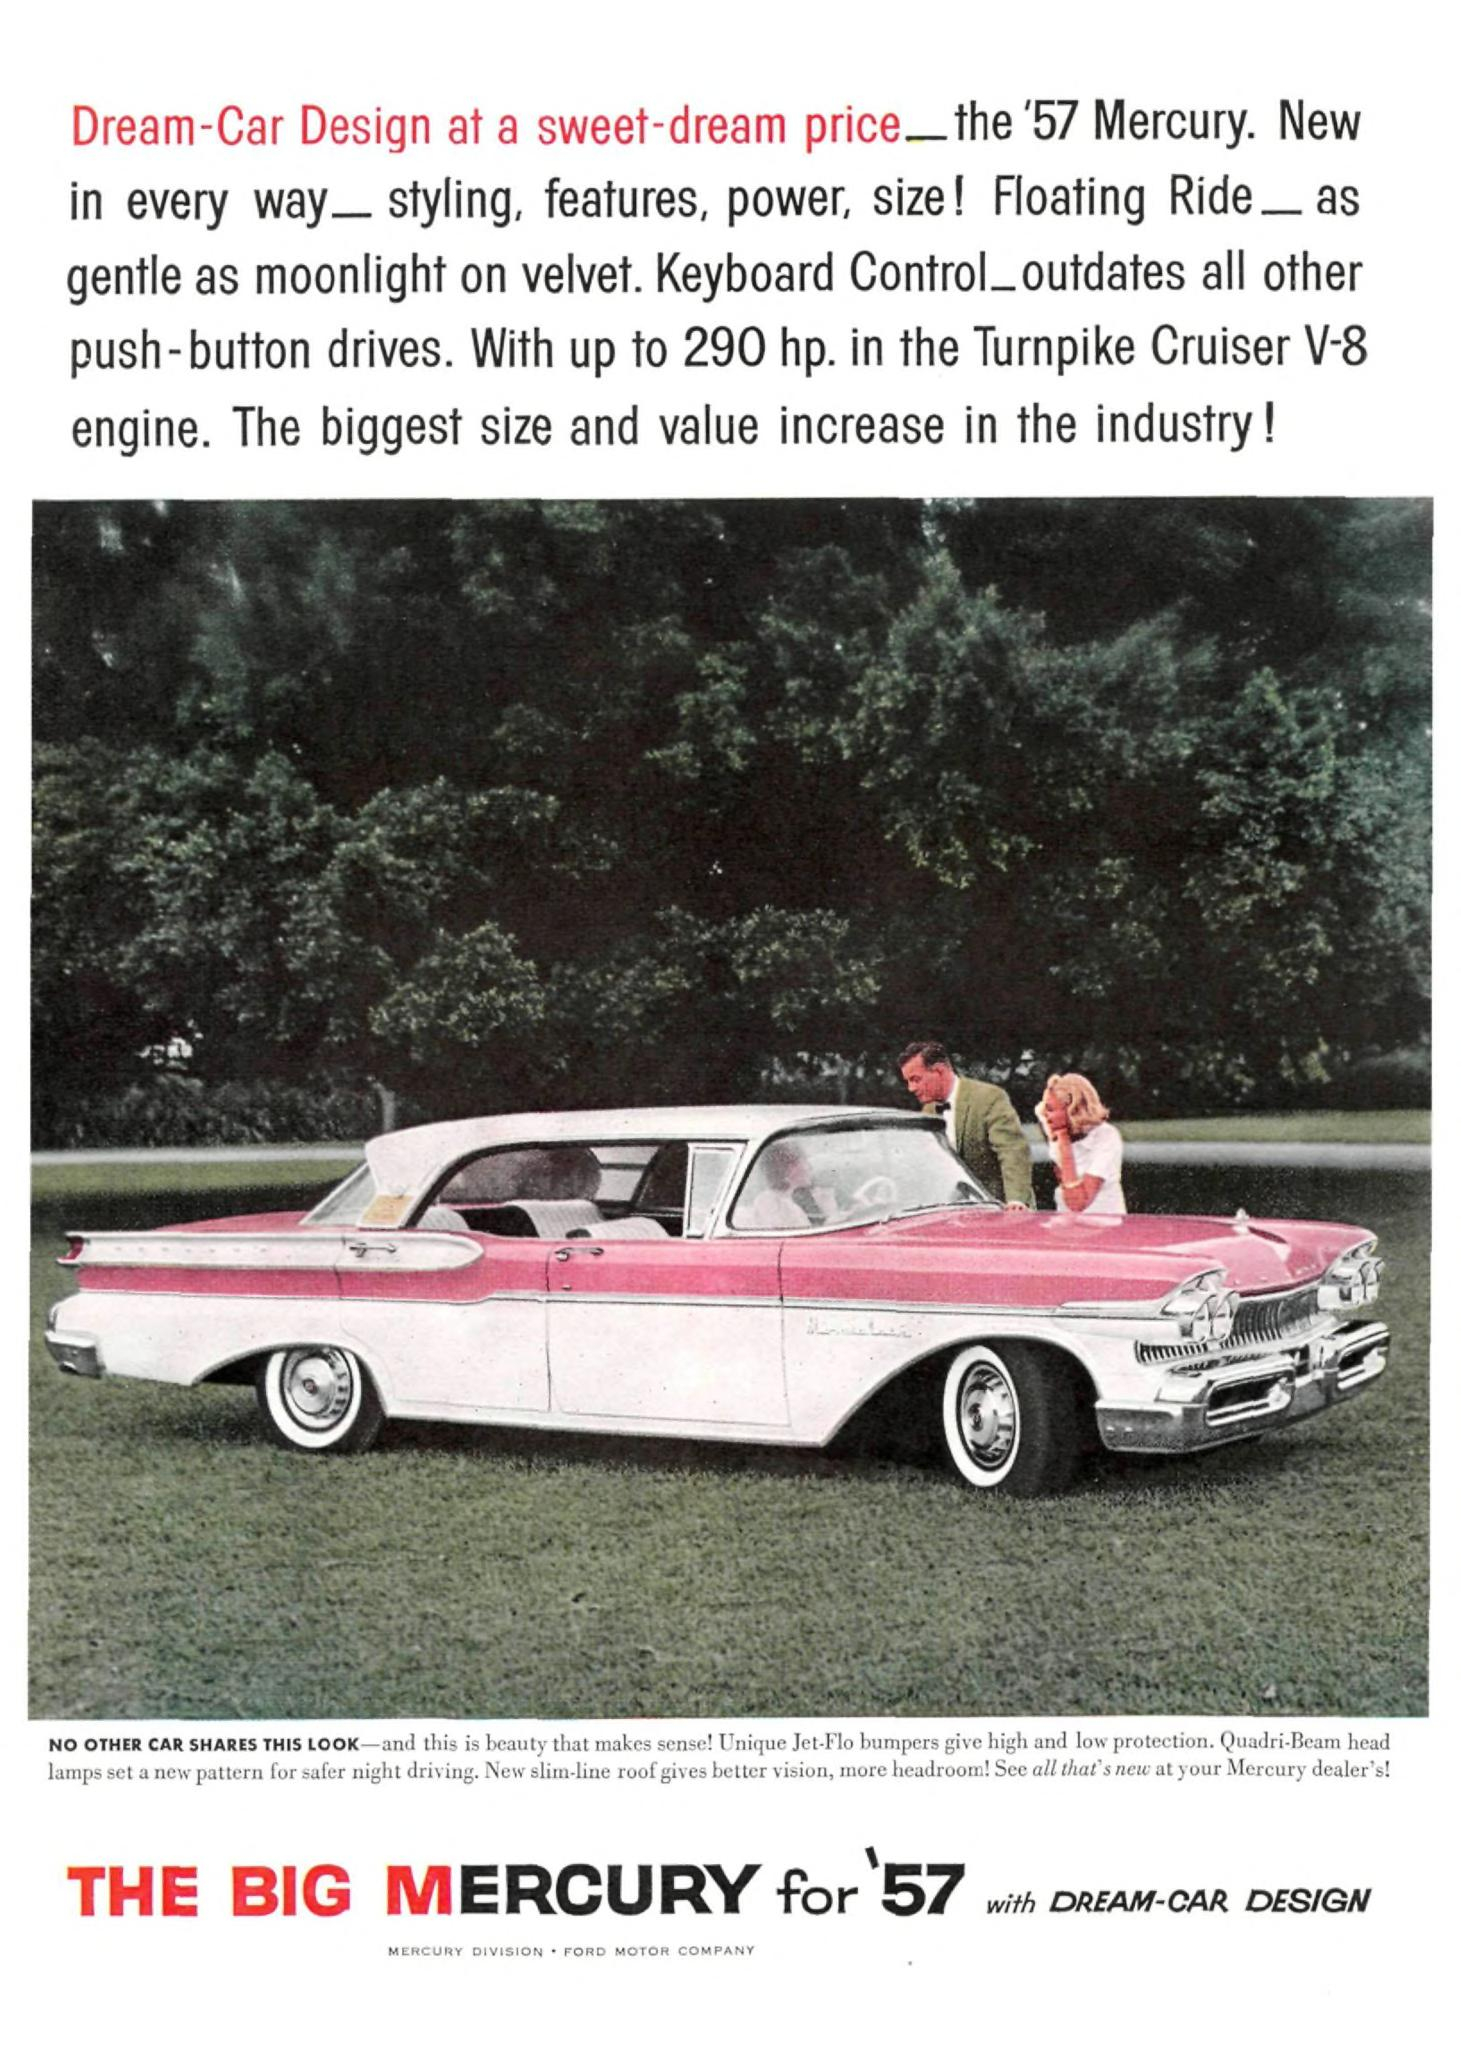 1957 Mercury Turnpike Cruiser - published in Sports Illustrated - February 11, 1957